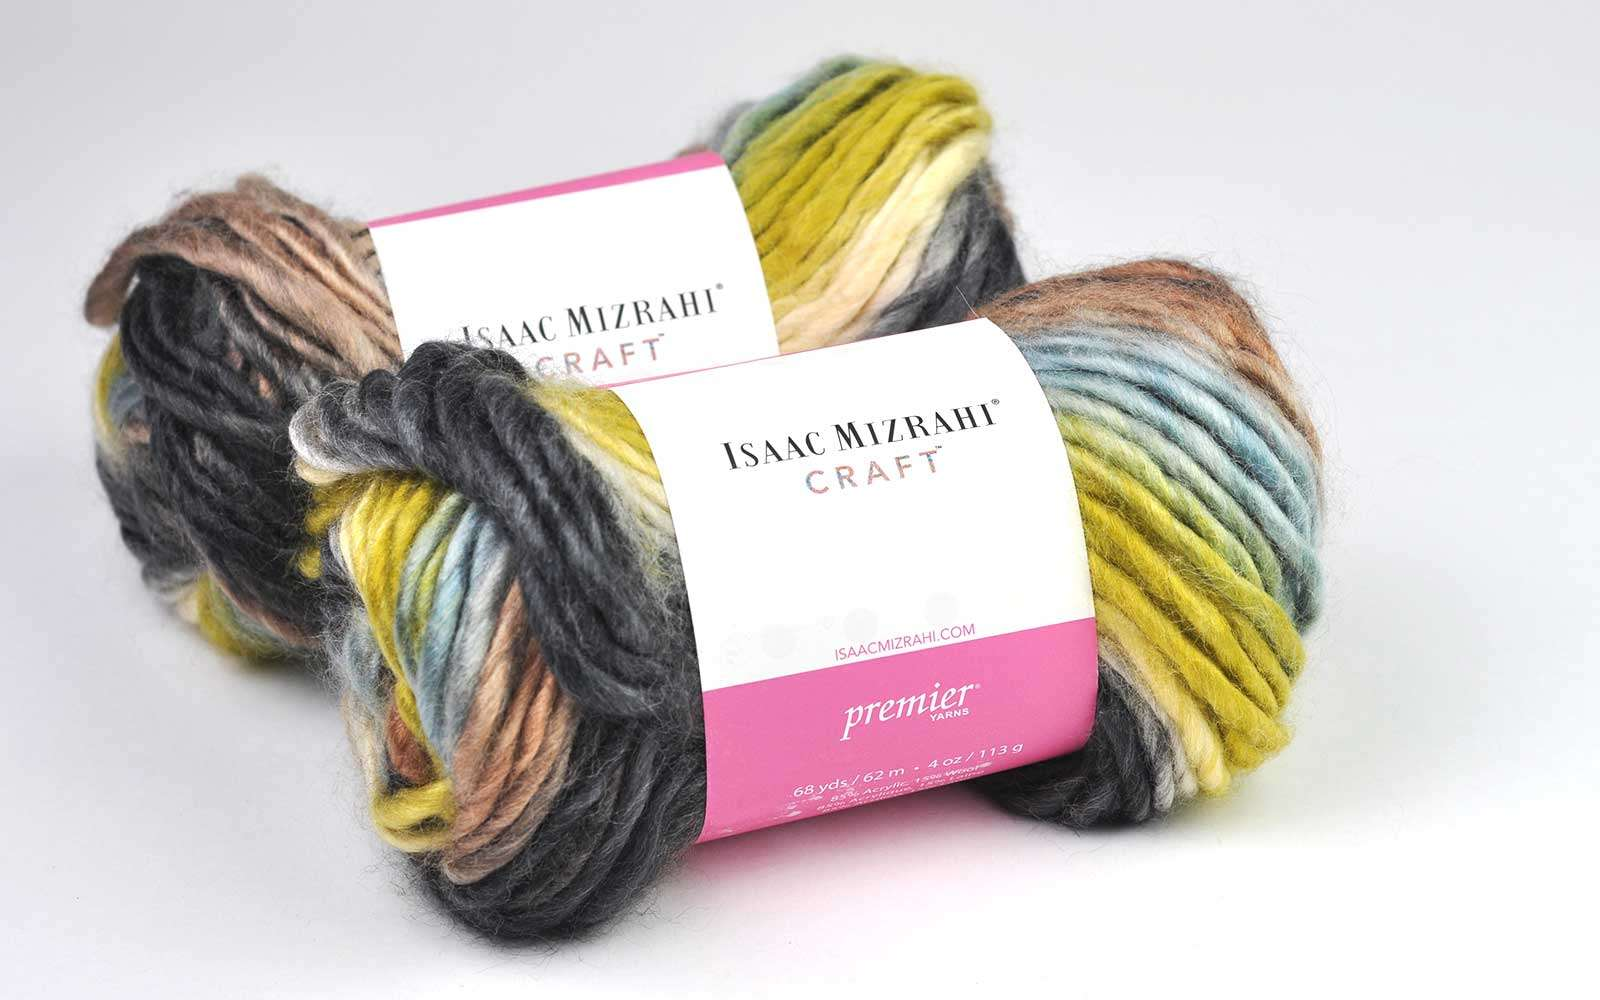 Yarn Yammer: New Yarn Out by Isaac Mizrahi